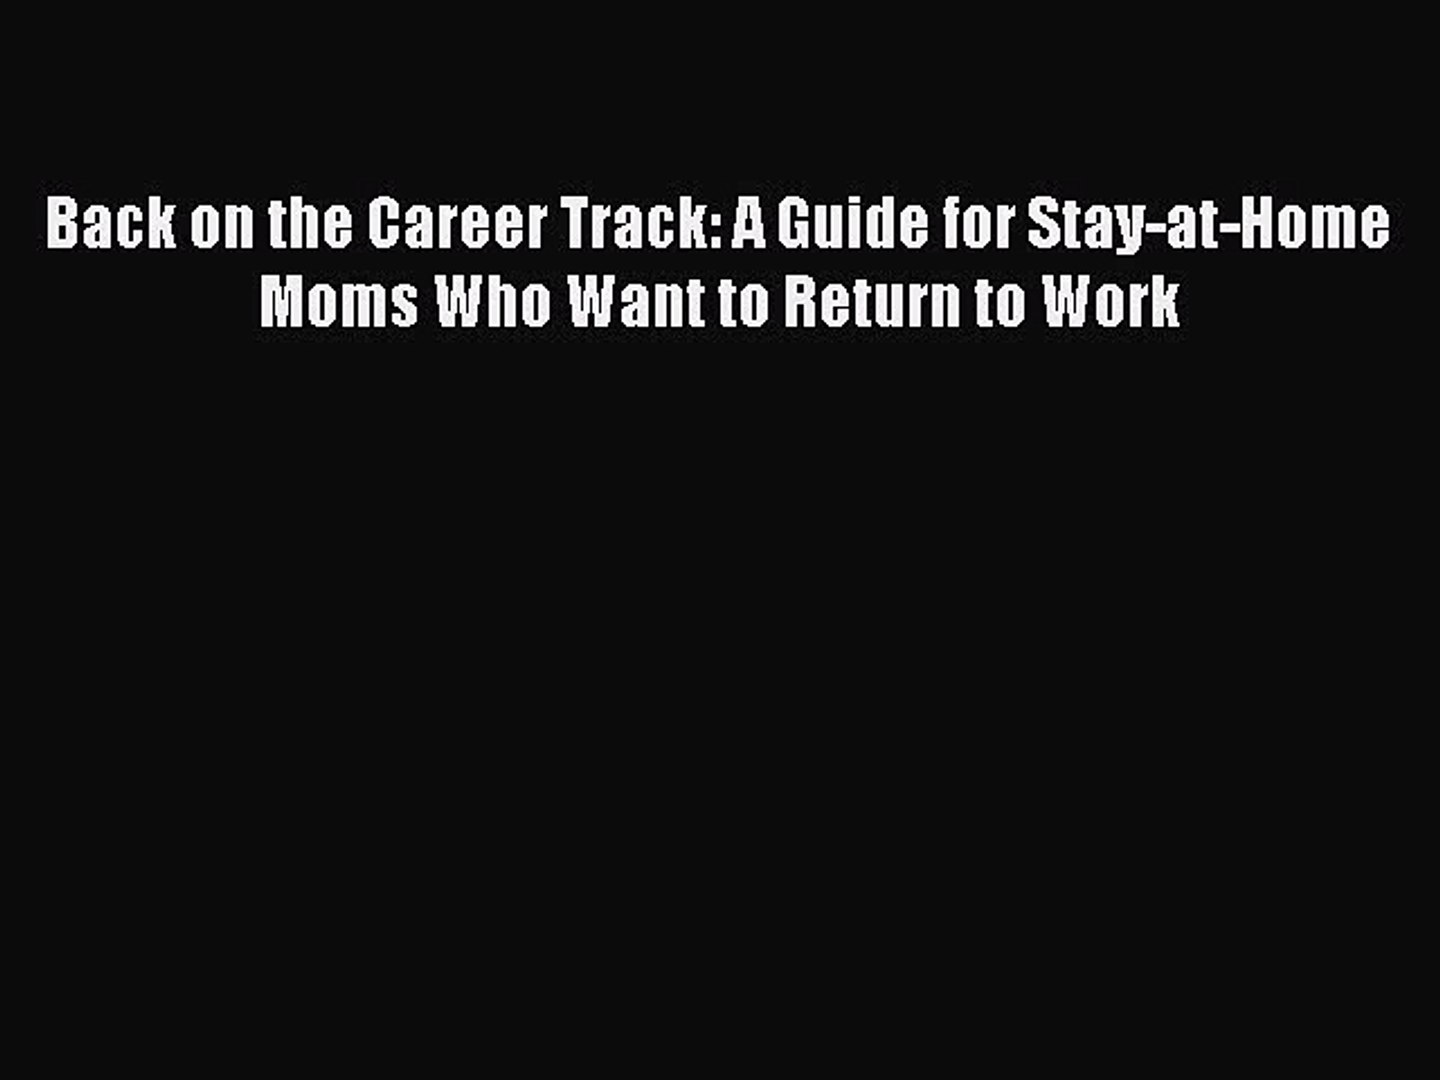 A Guide for Stay-at-Home Moms Who Want to Return to Work Back on the Career Track